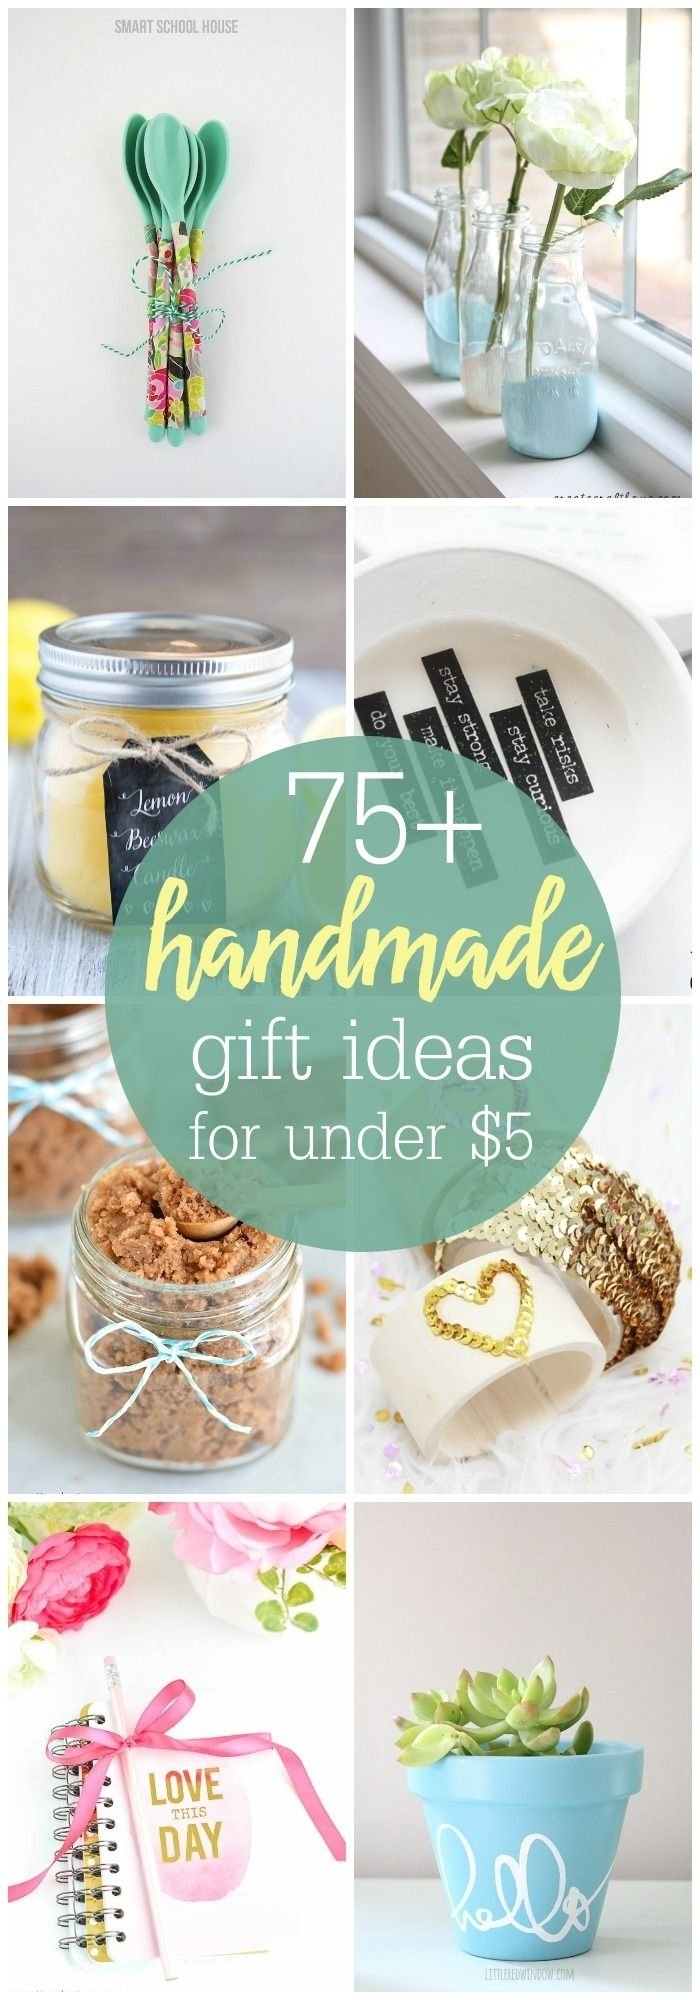 10 Gorgeous Couple Gift Ideas For Christmas 1603 best gift ideas images on pinterest gift ideas mothers day 2 2021